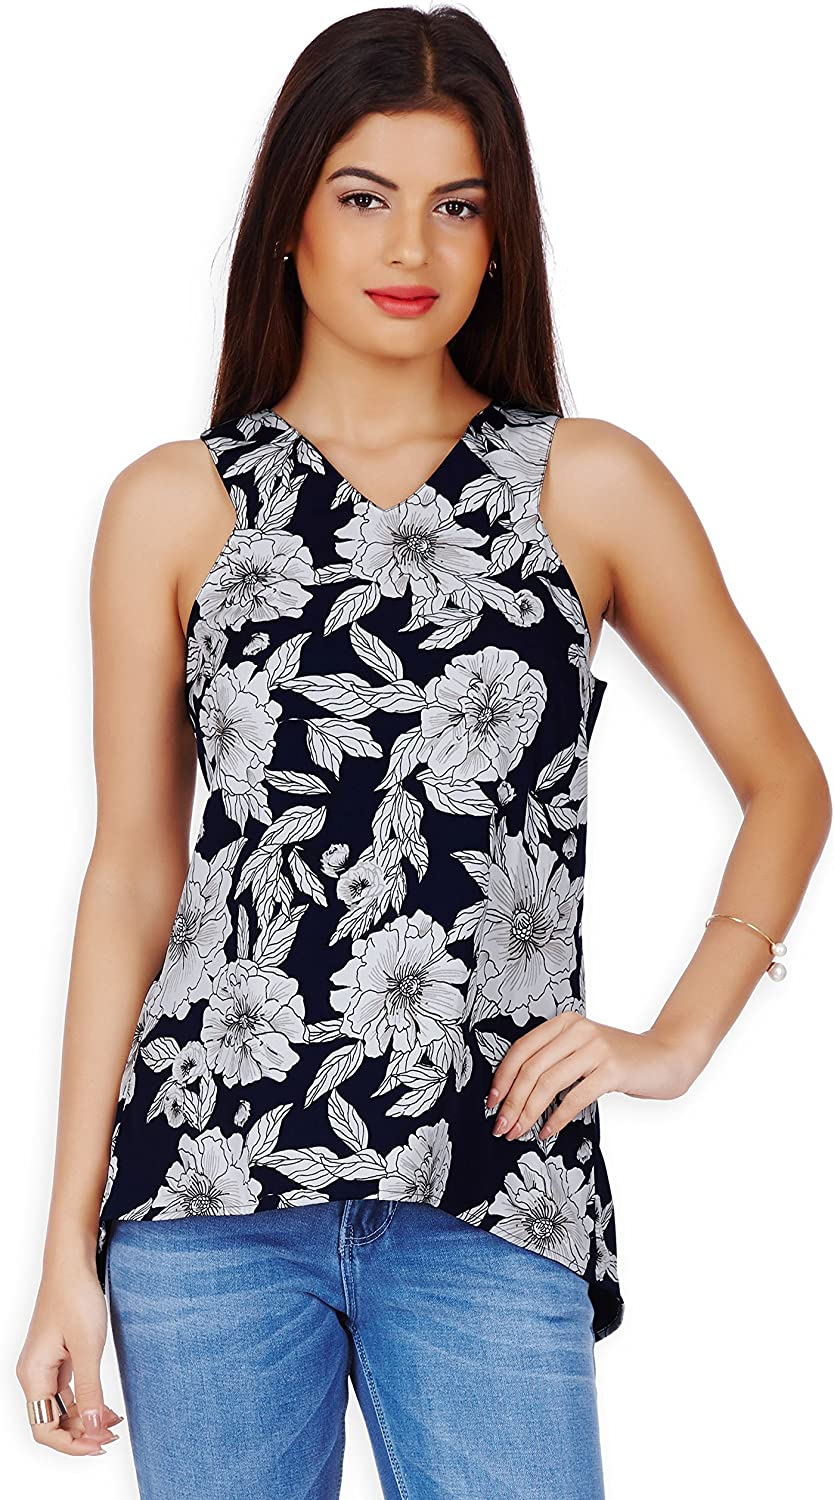 20Dresses Womens Floral Printed Sleeveless Polyester Top